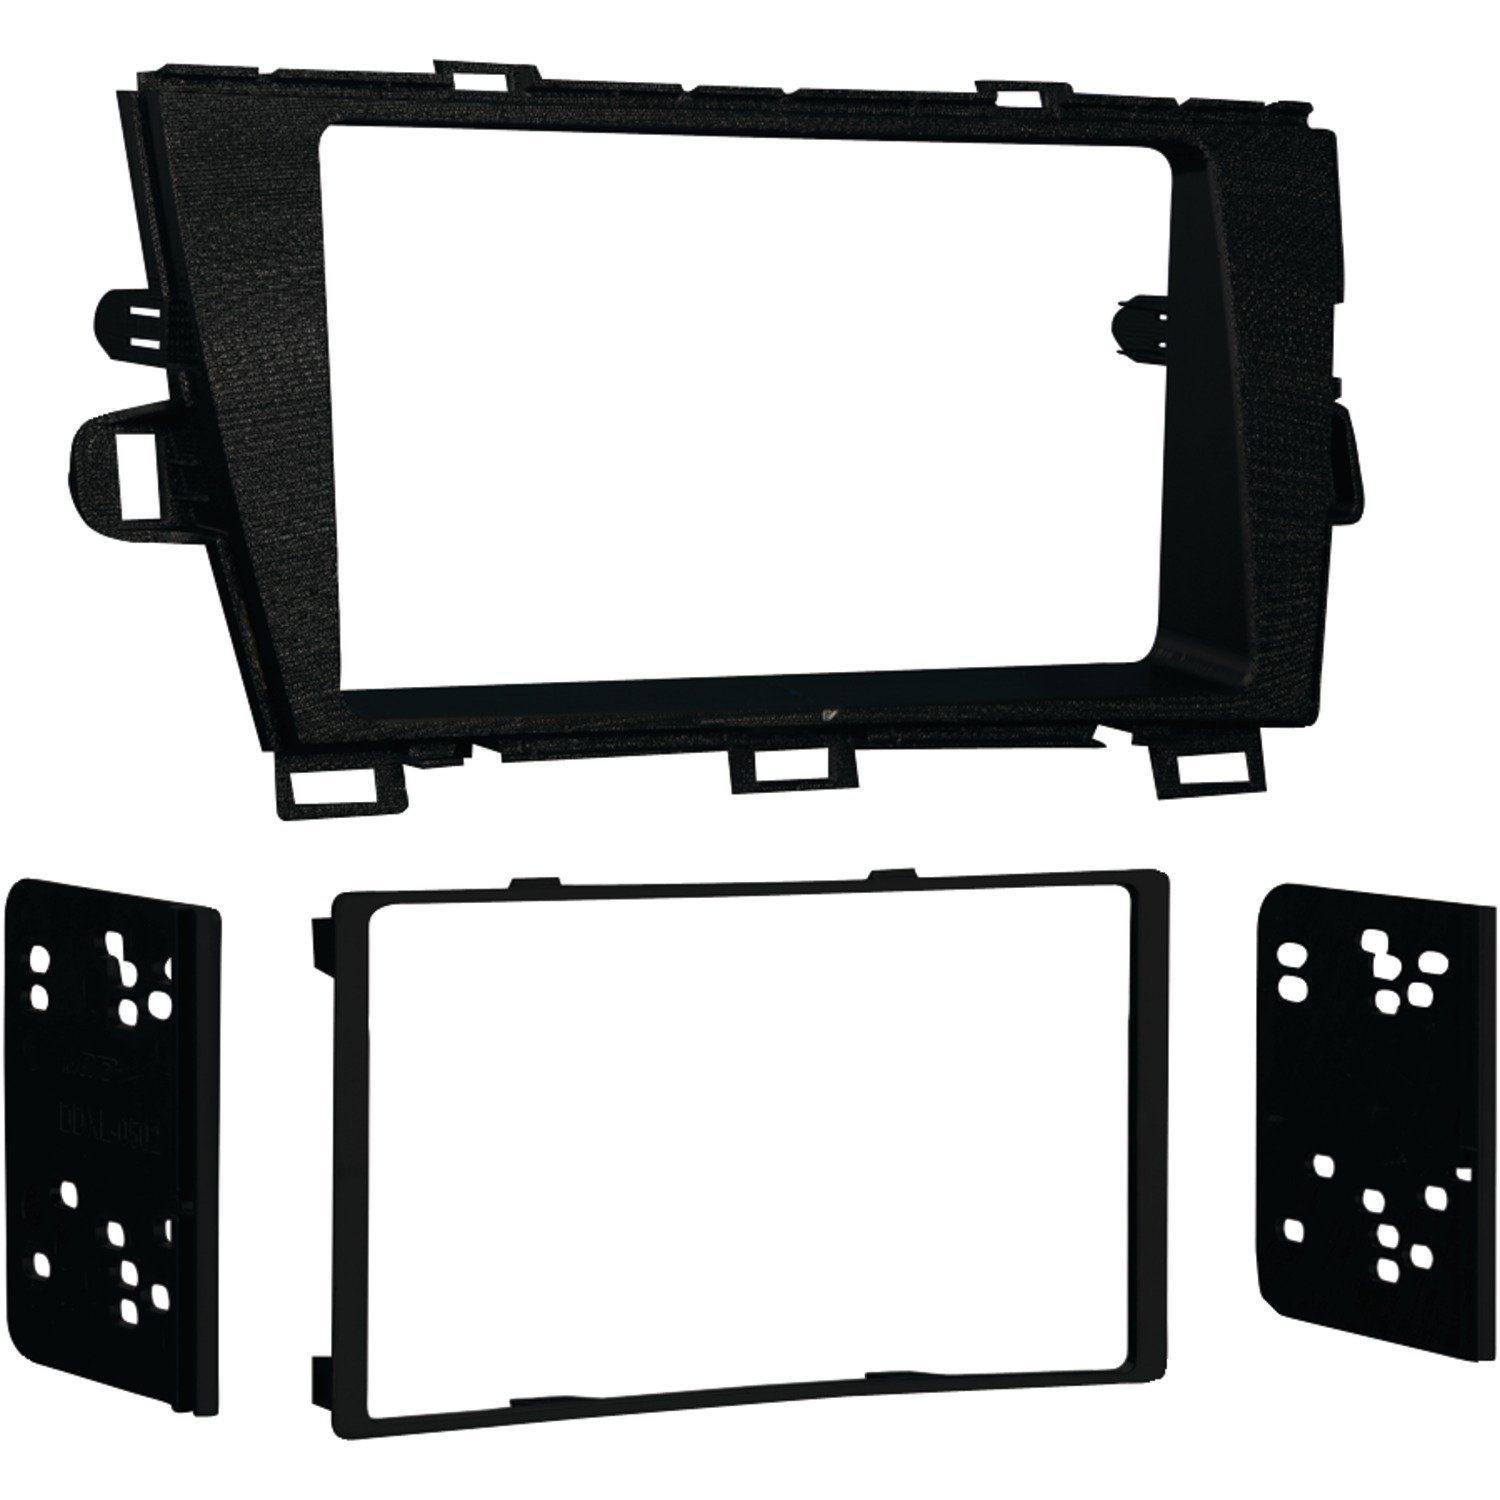 Metra 95-8226B Dash Kit for Toyota Prius 2010 Double DIN (Black)